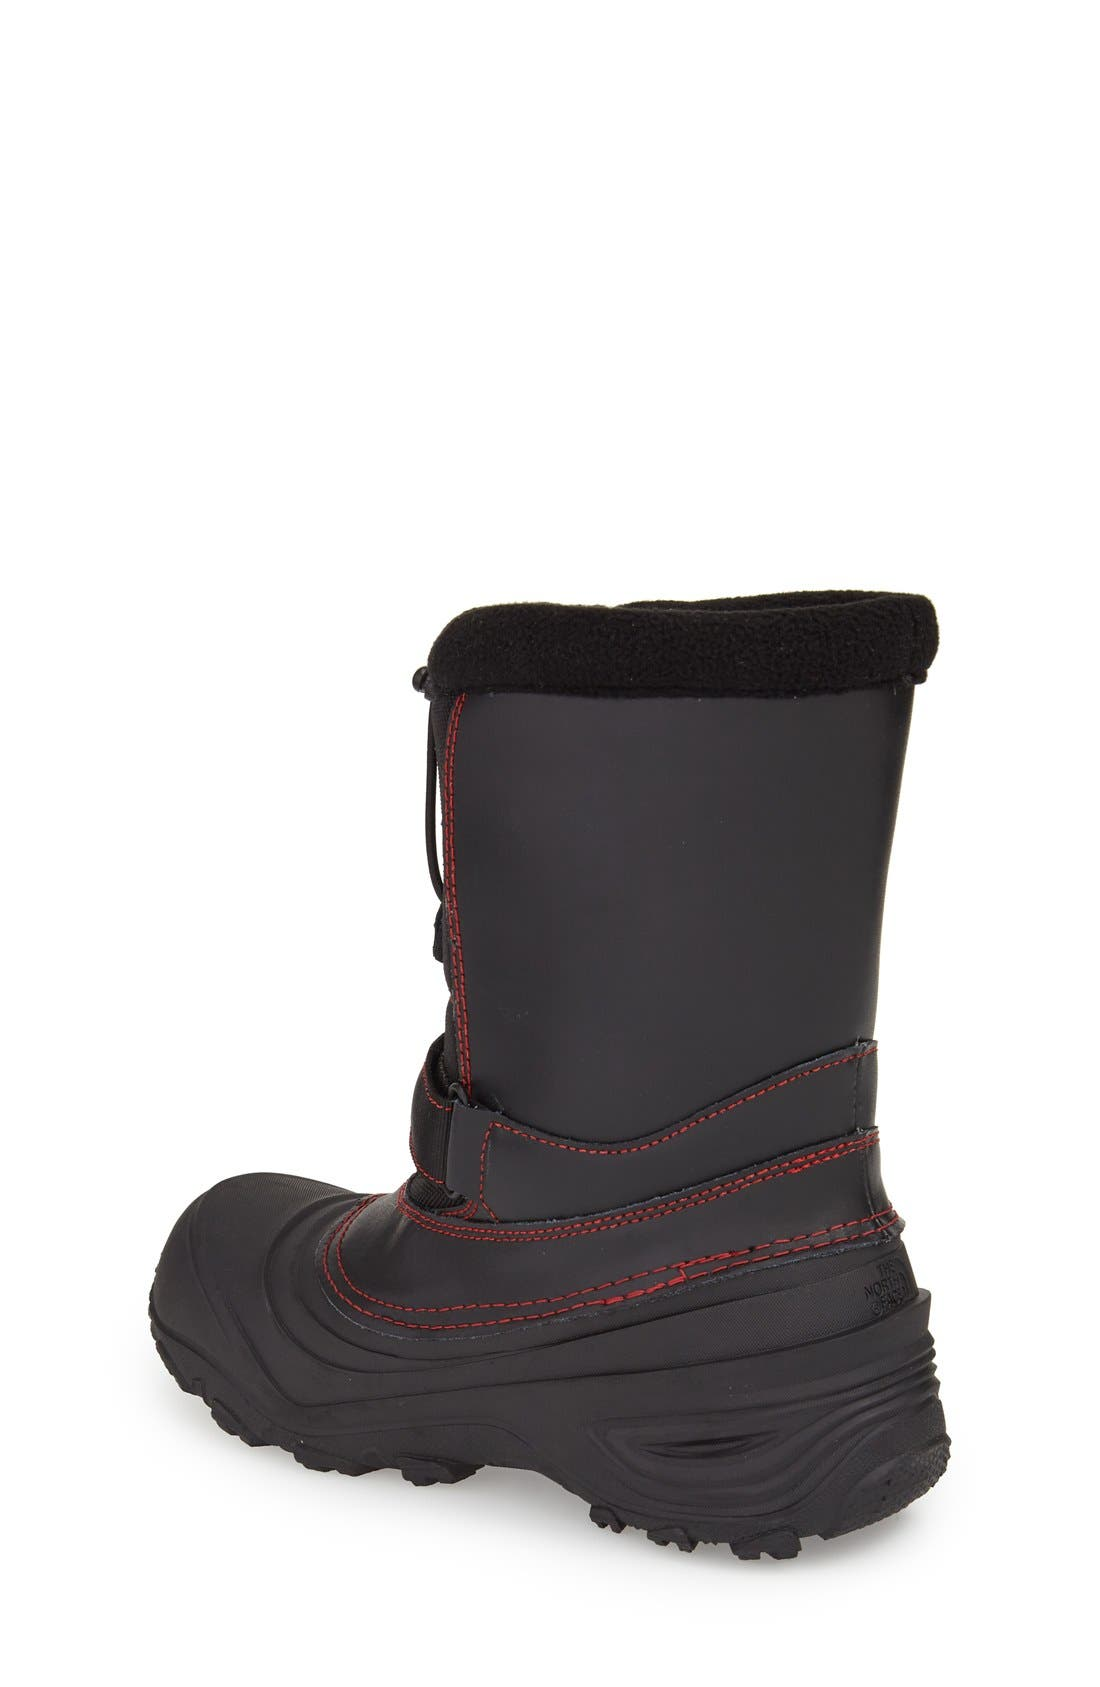 'Alpenglow Extreme II' Waterproof Snow Boot,                             Alternate thumbnail 2, color,                             Black/ Red